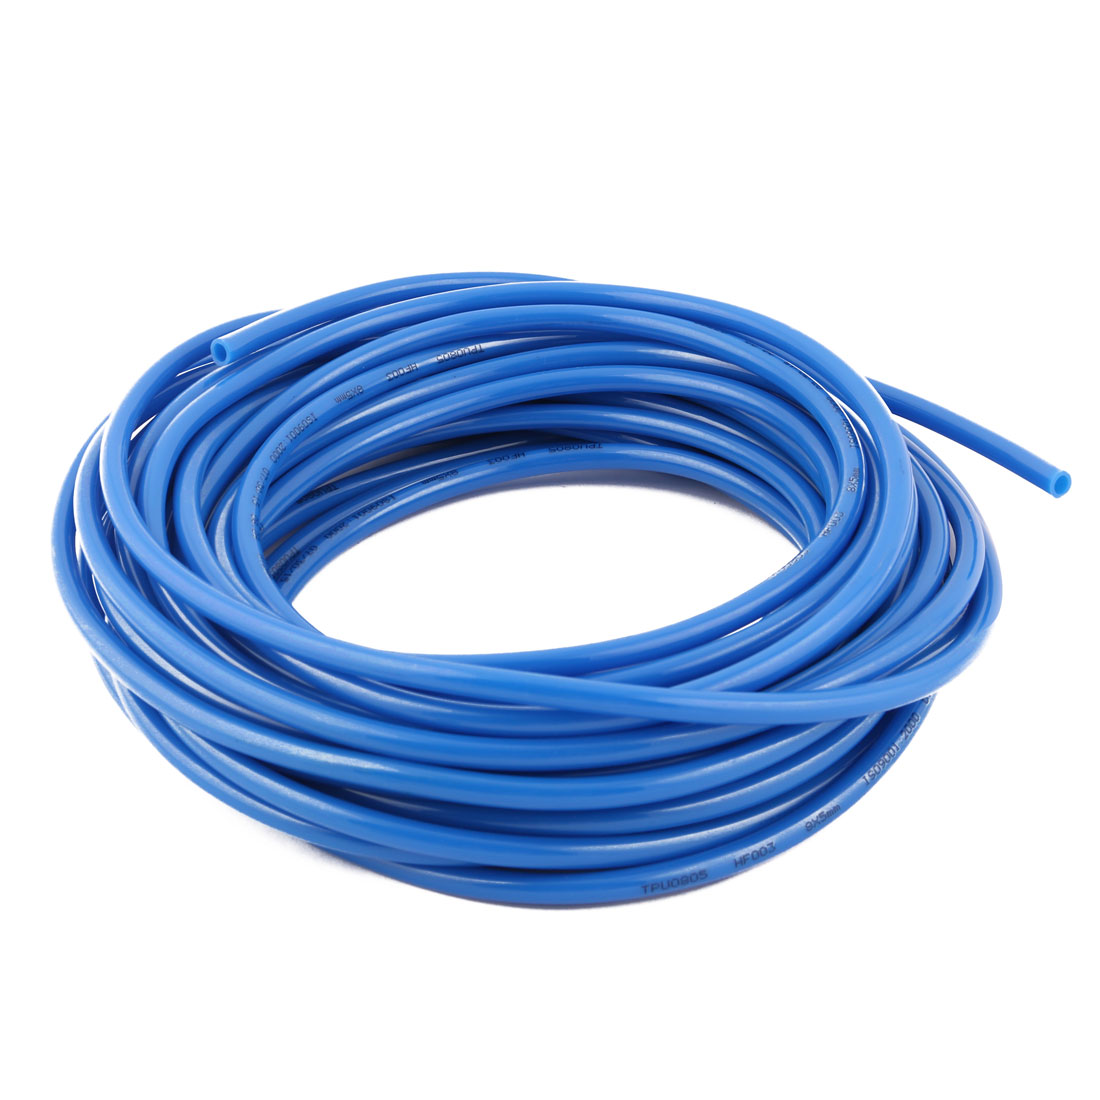 8mm x 5mm Polyurethane Pneumatic PU Air Tube Tubing Pipe Hose Blue 17.2M Length